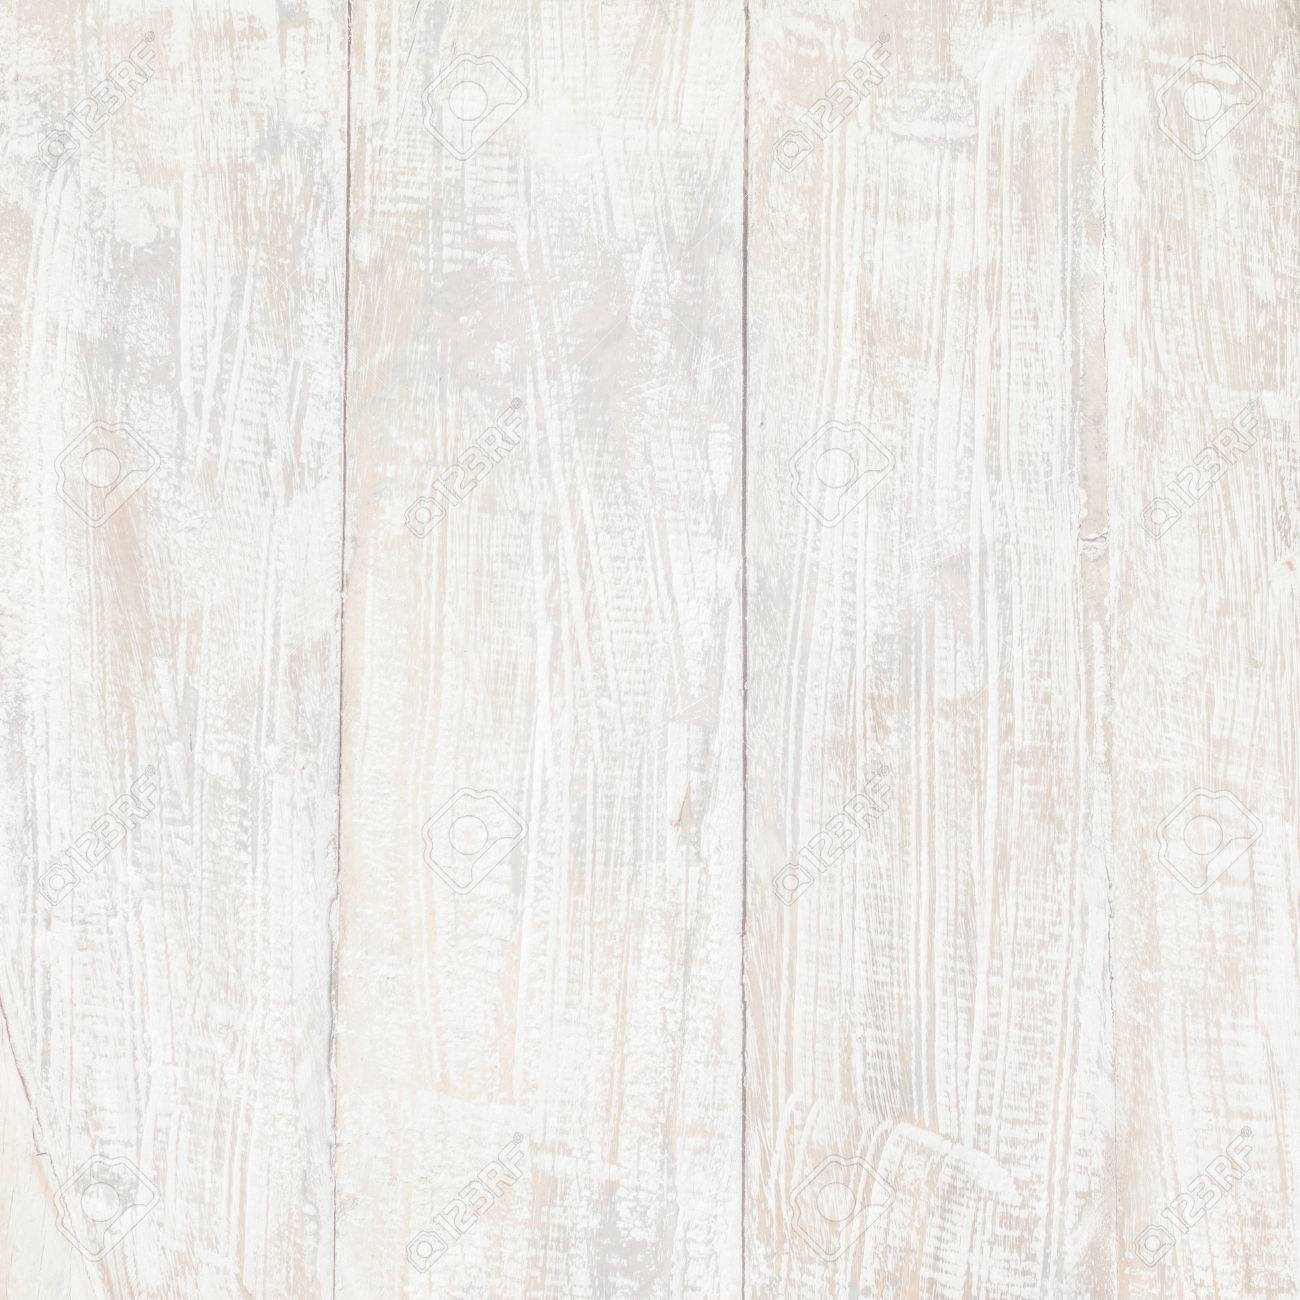 White Wood Texture Background Wooden Table Top View Stock Photo 1300x1300